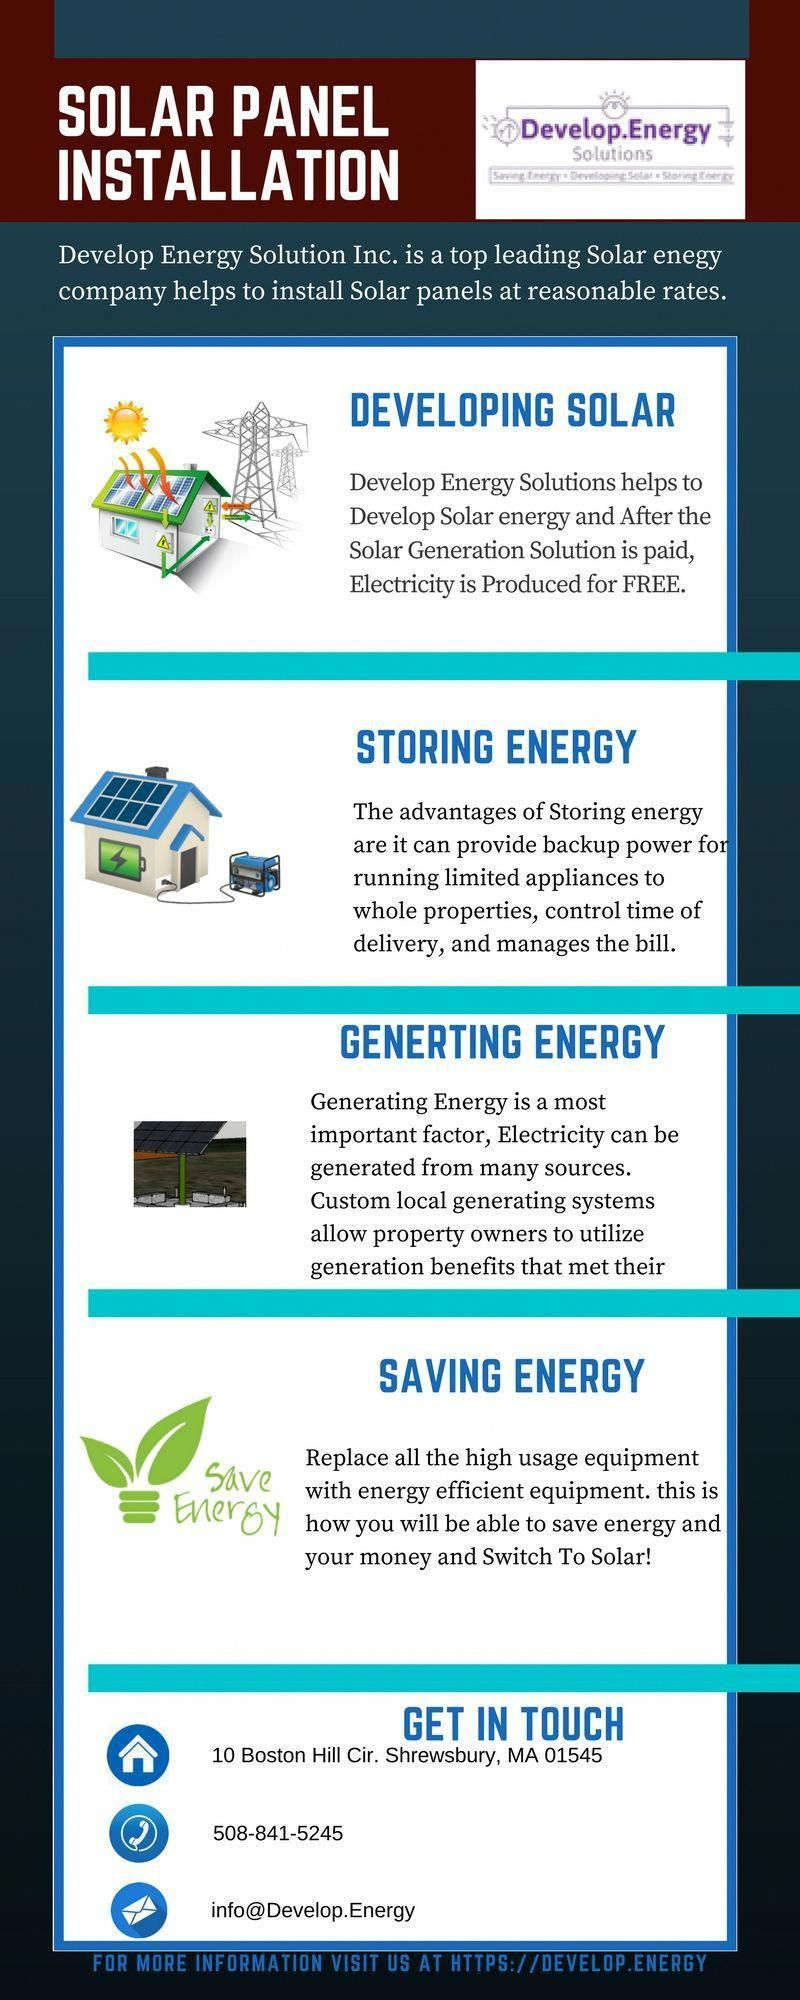 Develop.Energy Solutions, Inc. delivers the most cost